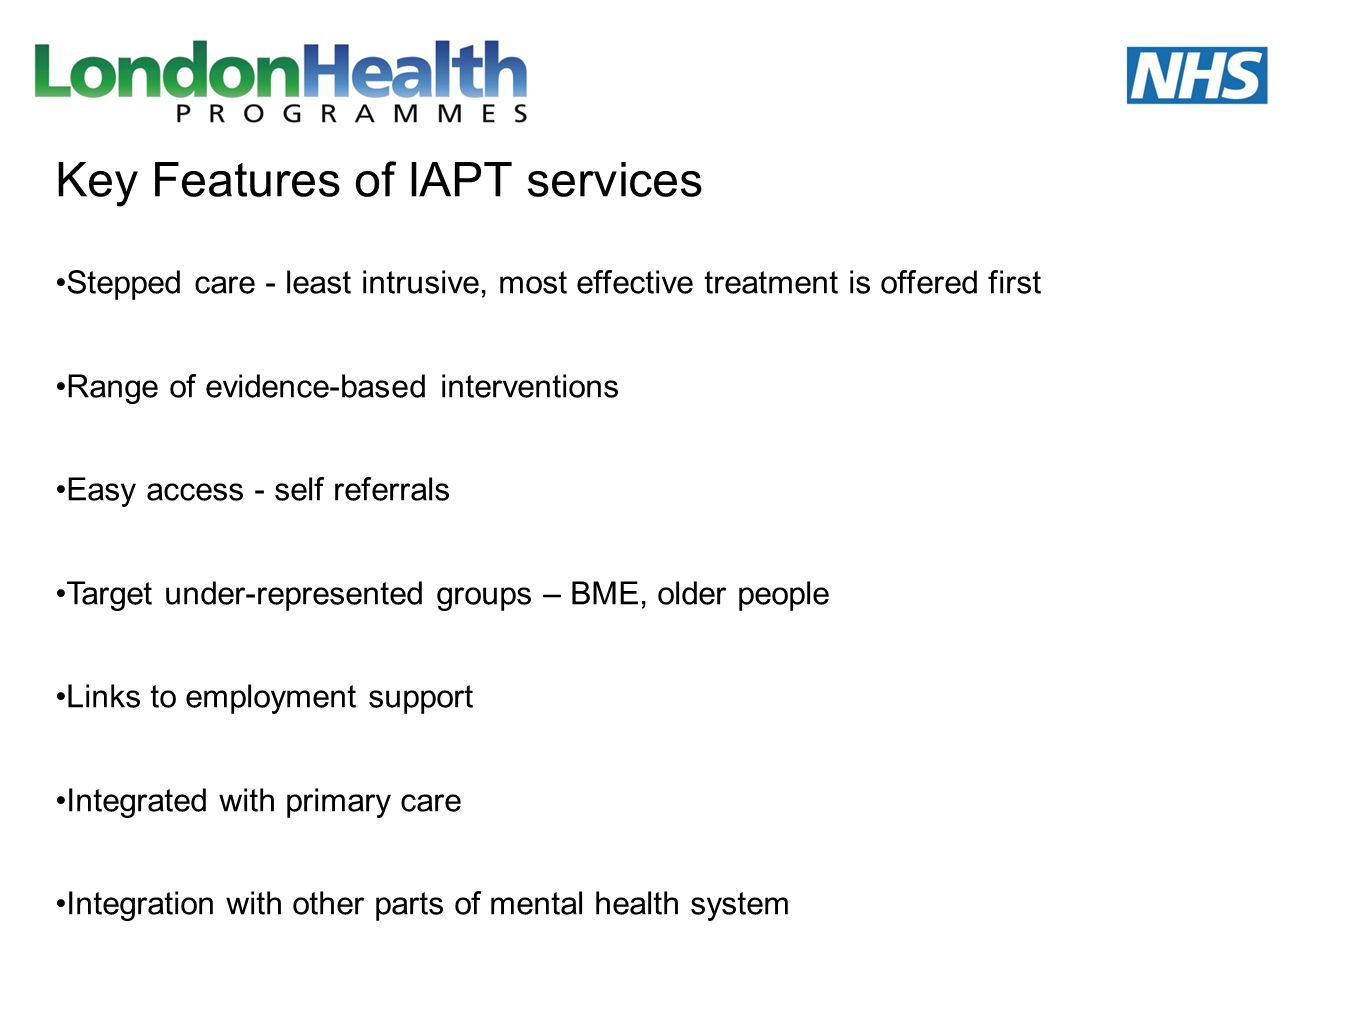 Key Features of IAPT services